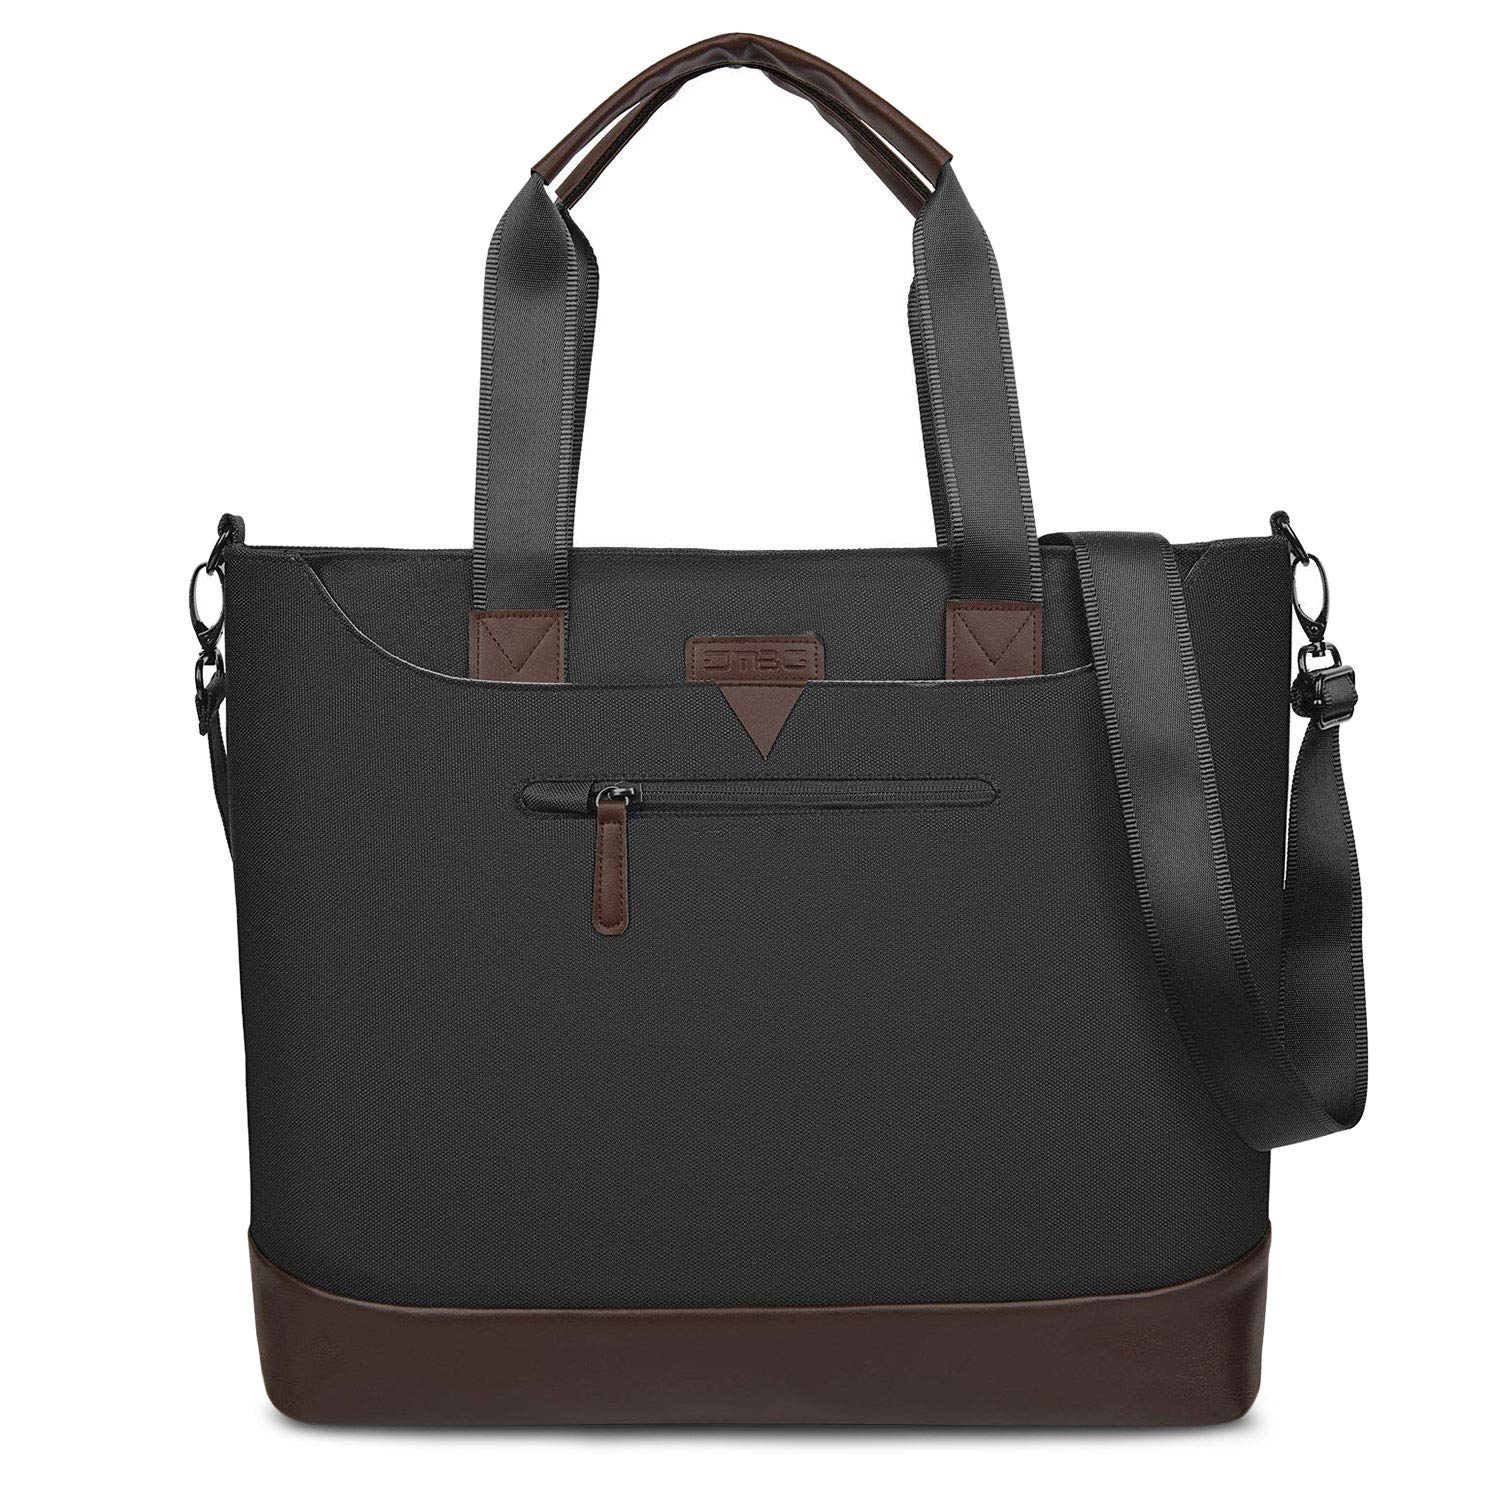 85c22861ae5 Ladies Laptop Tote Bag,DTBG Stylish Large Womens Business Laptop Shoulder  Bag Work Tote Purse Office Messenger Briefcase Travel Shopping Handbag with  ...